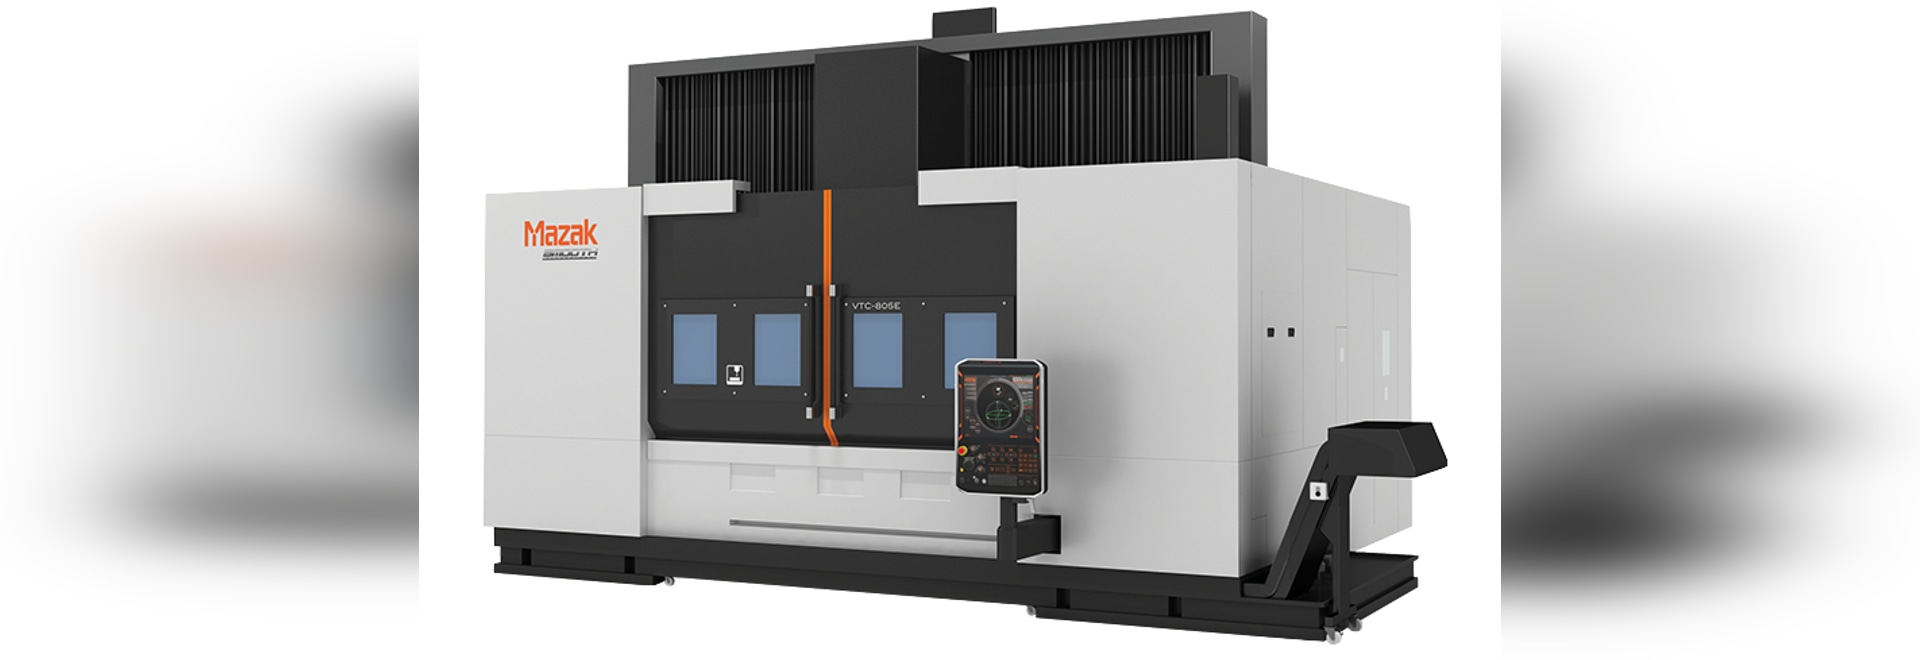 Mazak VTC-805E Delivers Speed and Power Kentucky-Built Machine